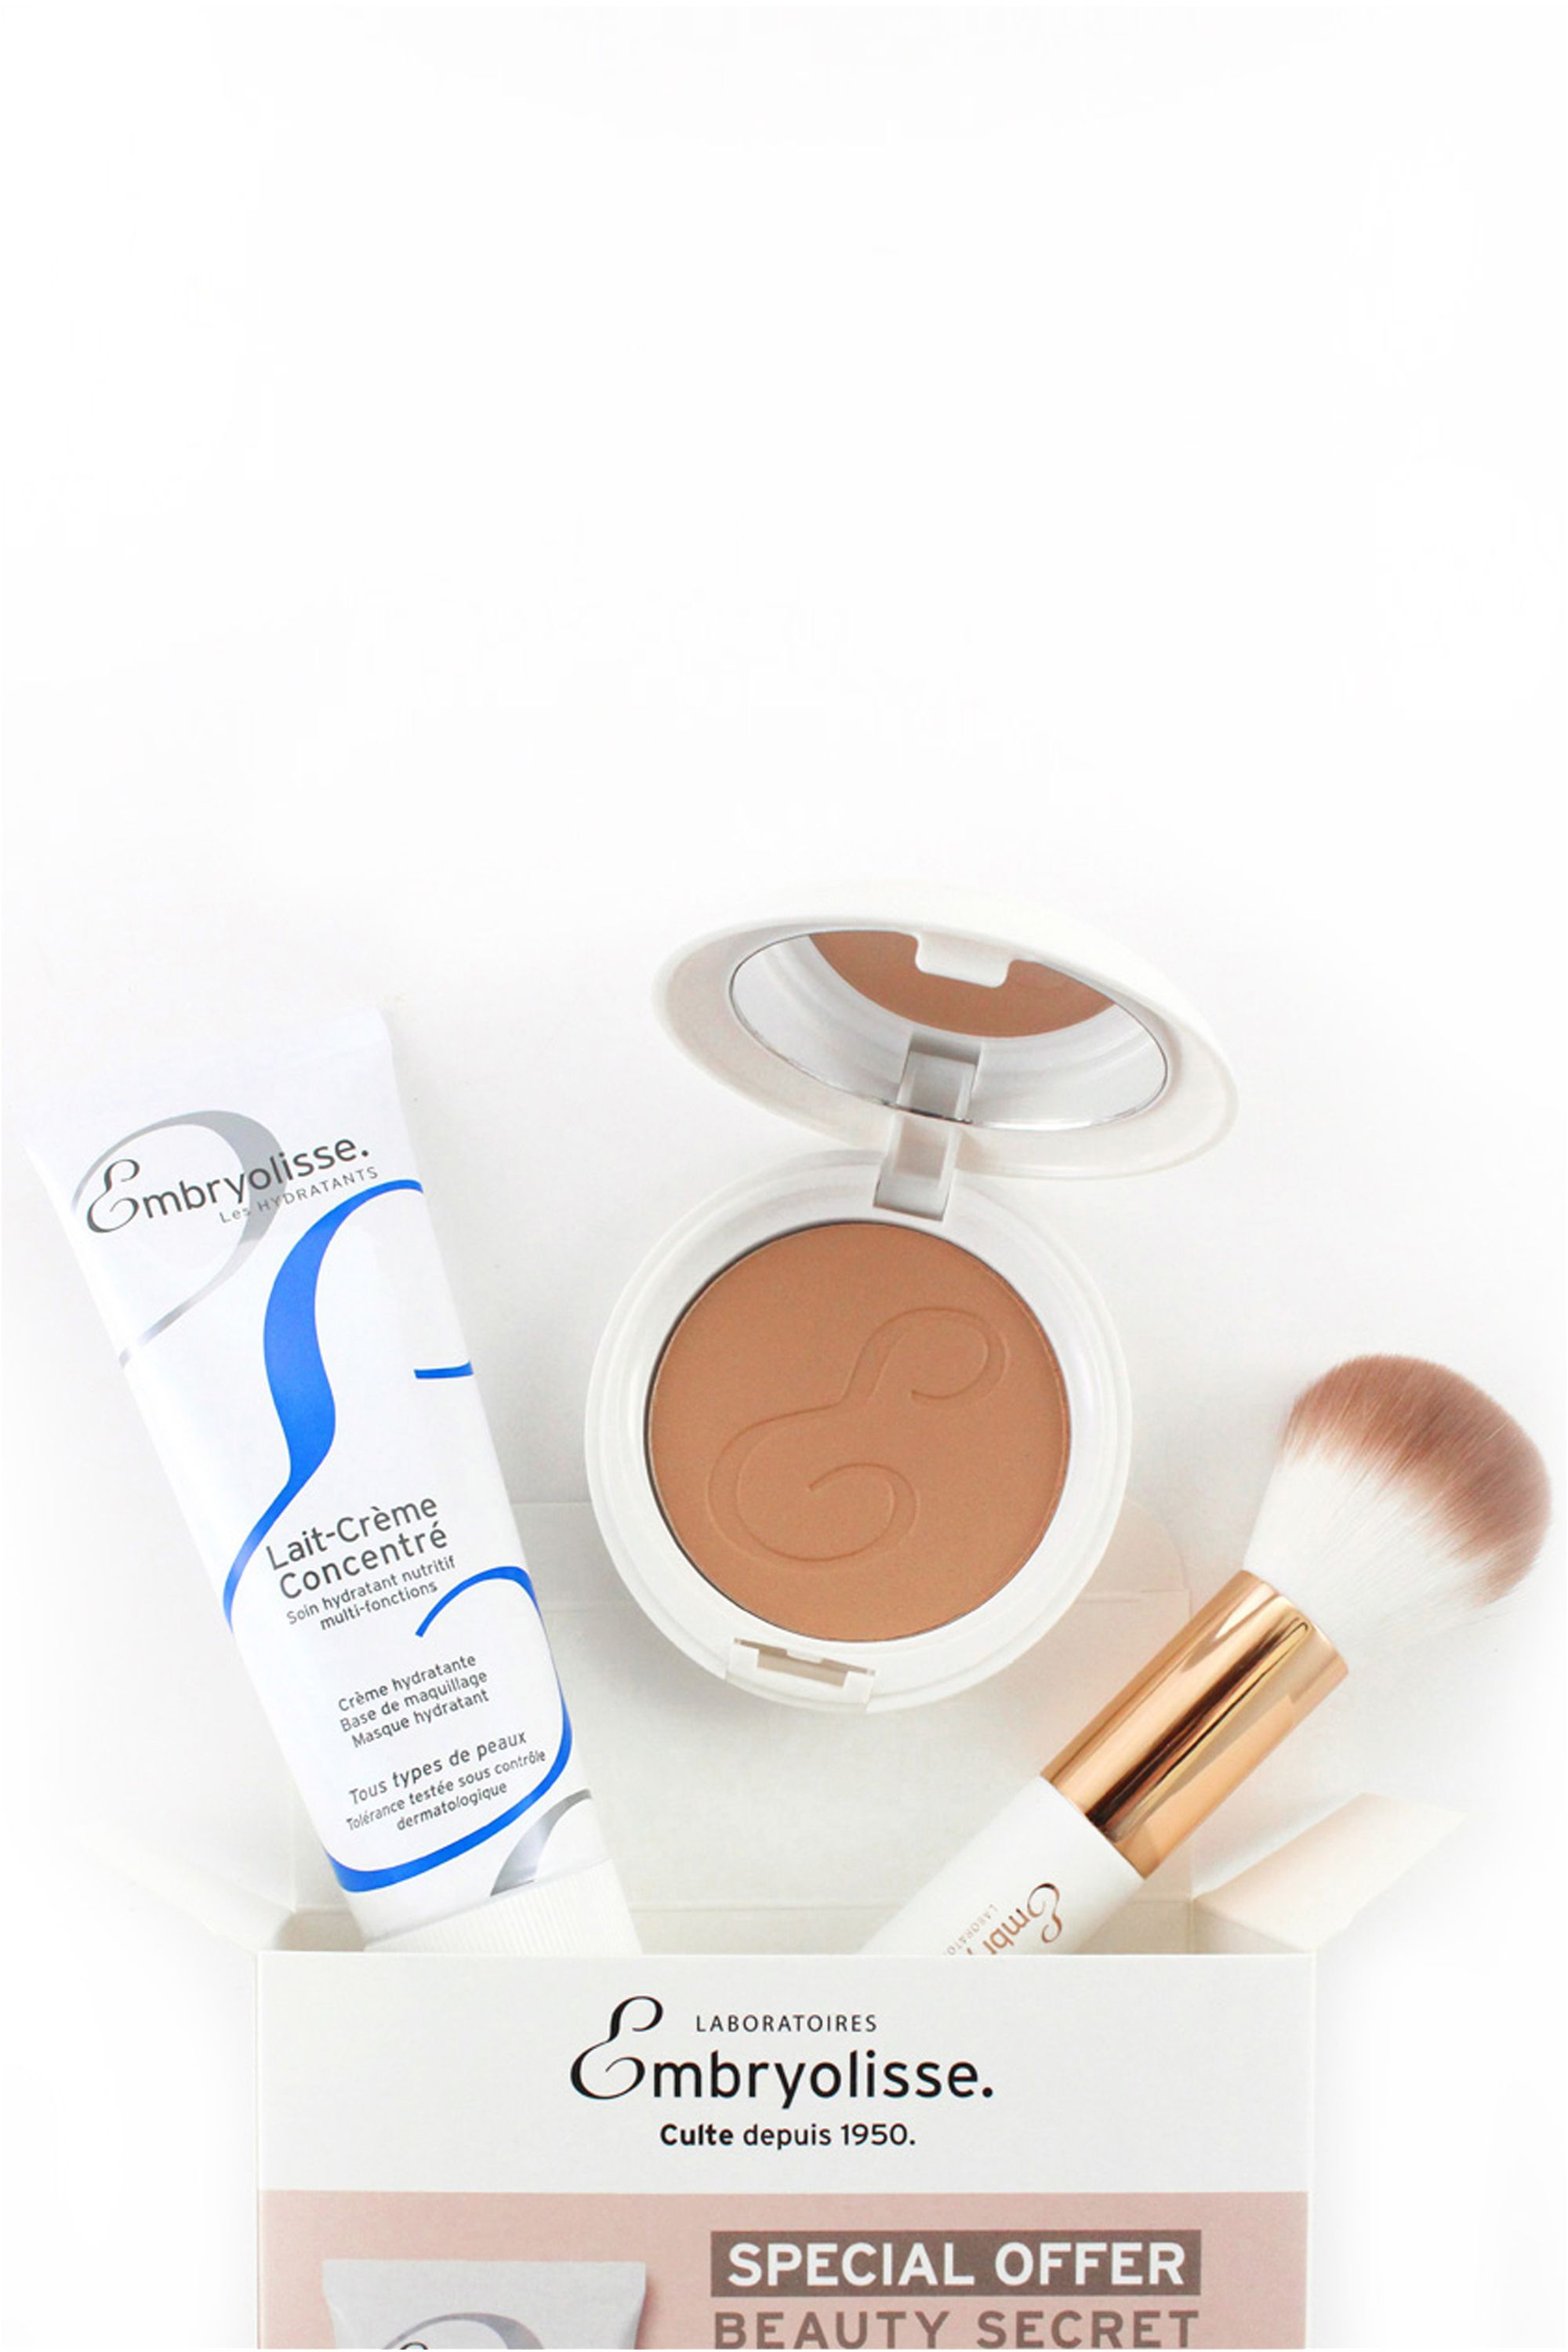 Blissim : Embryolisse - Coffret secret de beauté - Coffret secret de beauté